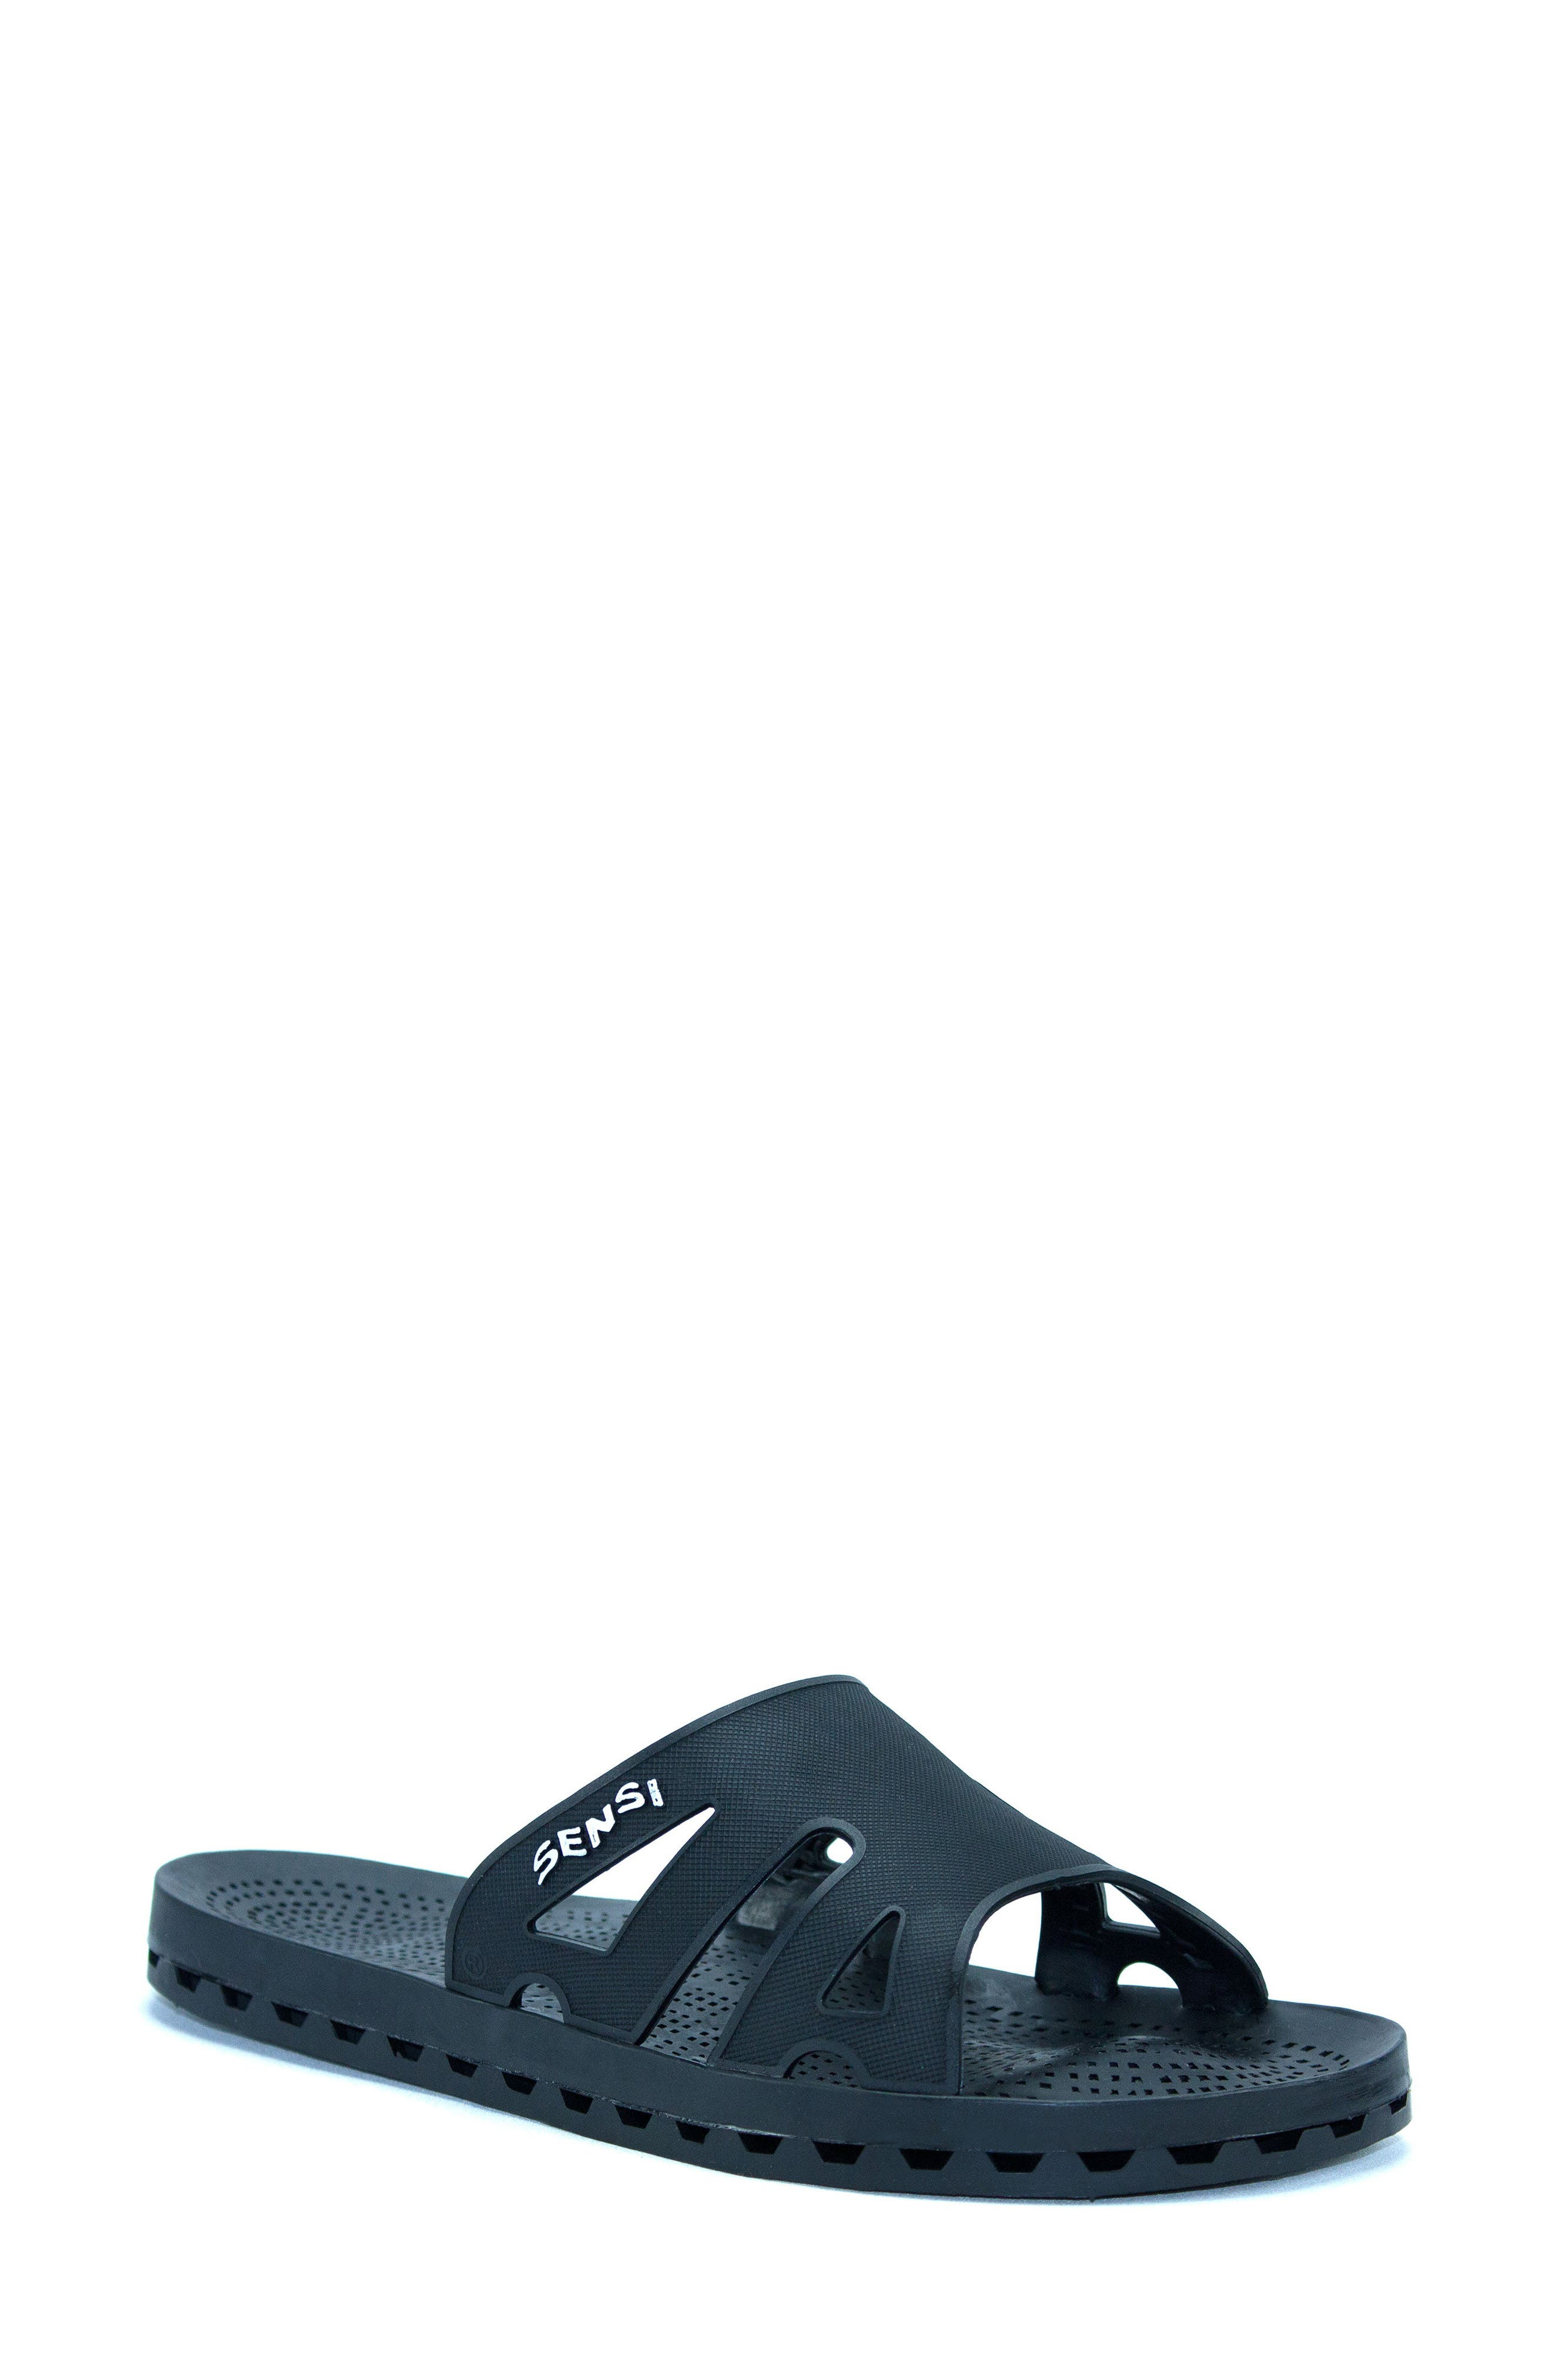 SENSI,                             Regatta Slide Sandal,                             Main thumbnail 1, color,                             001